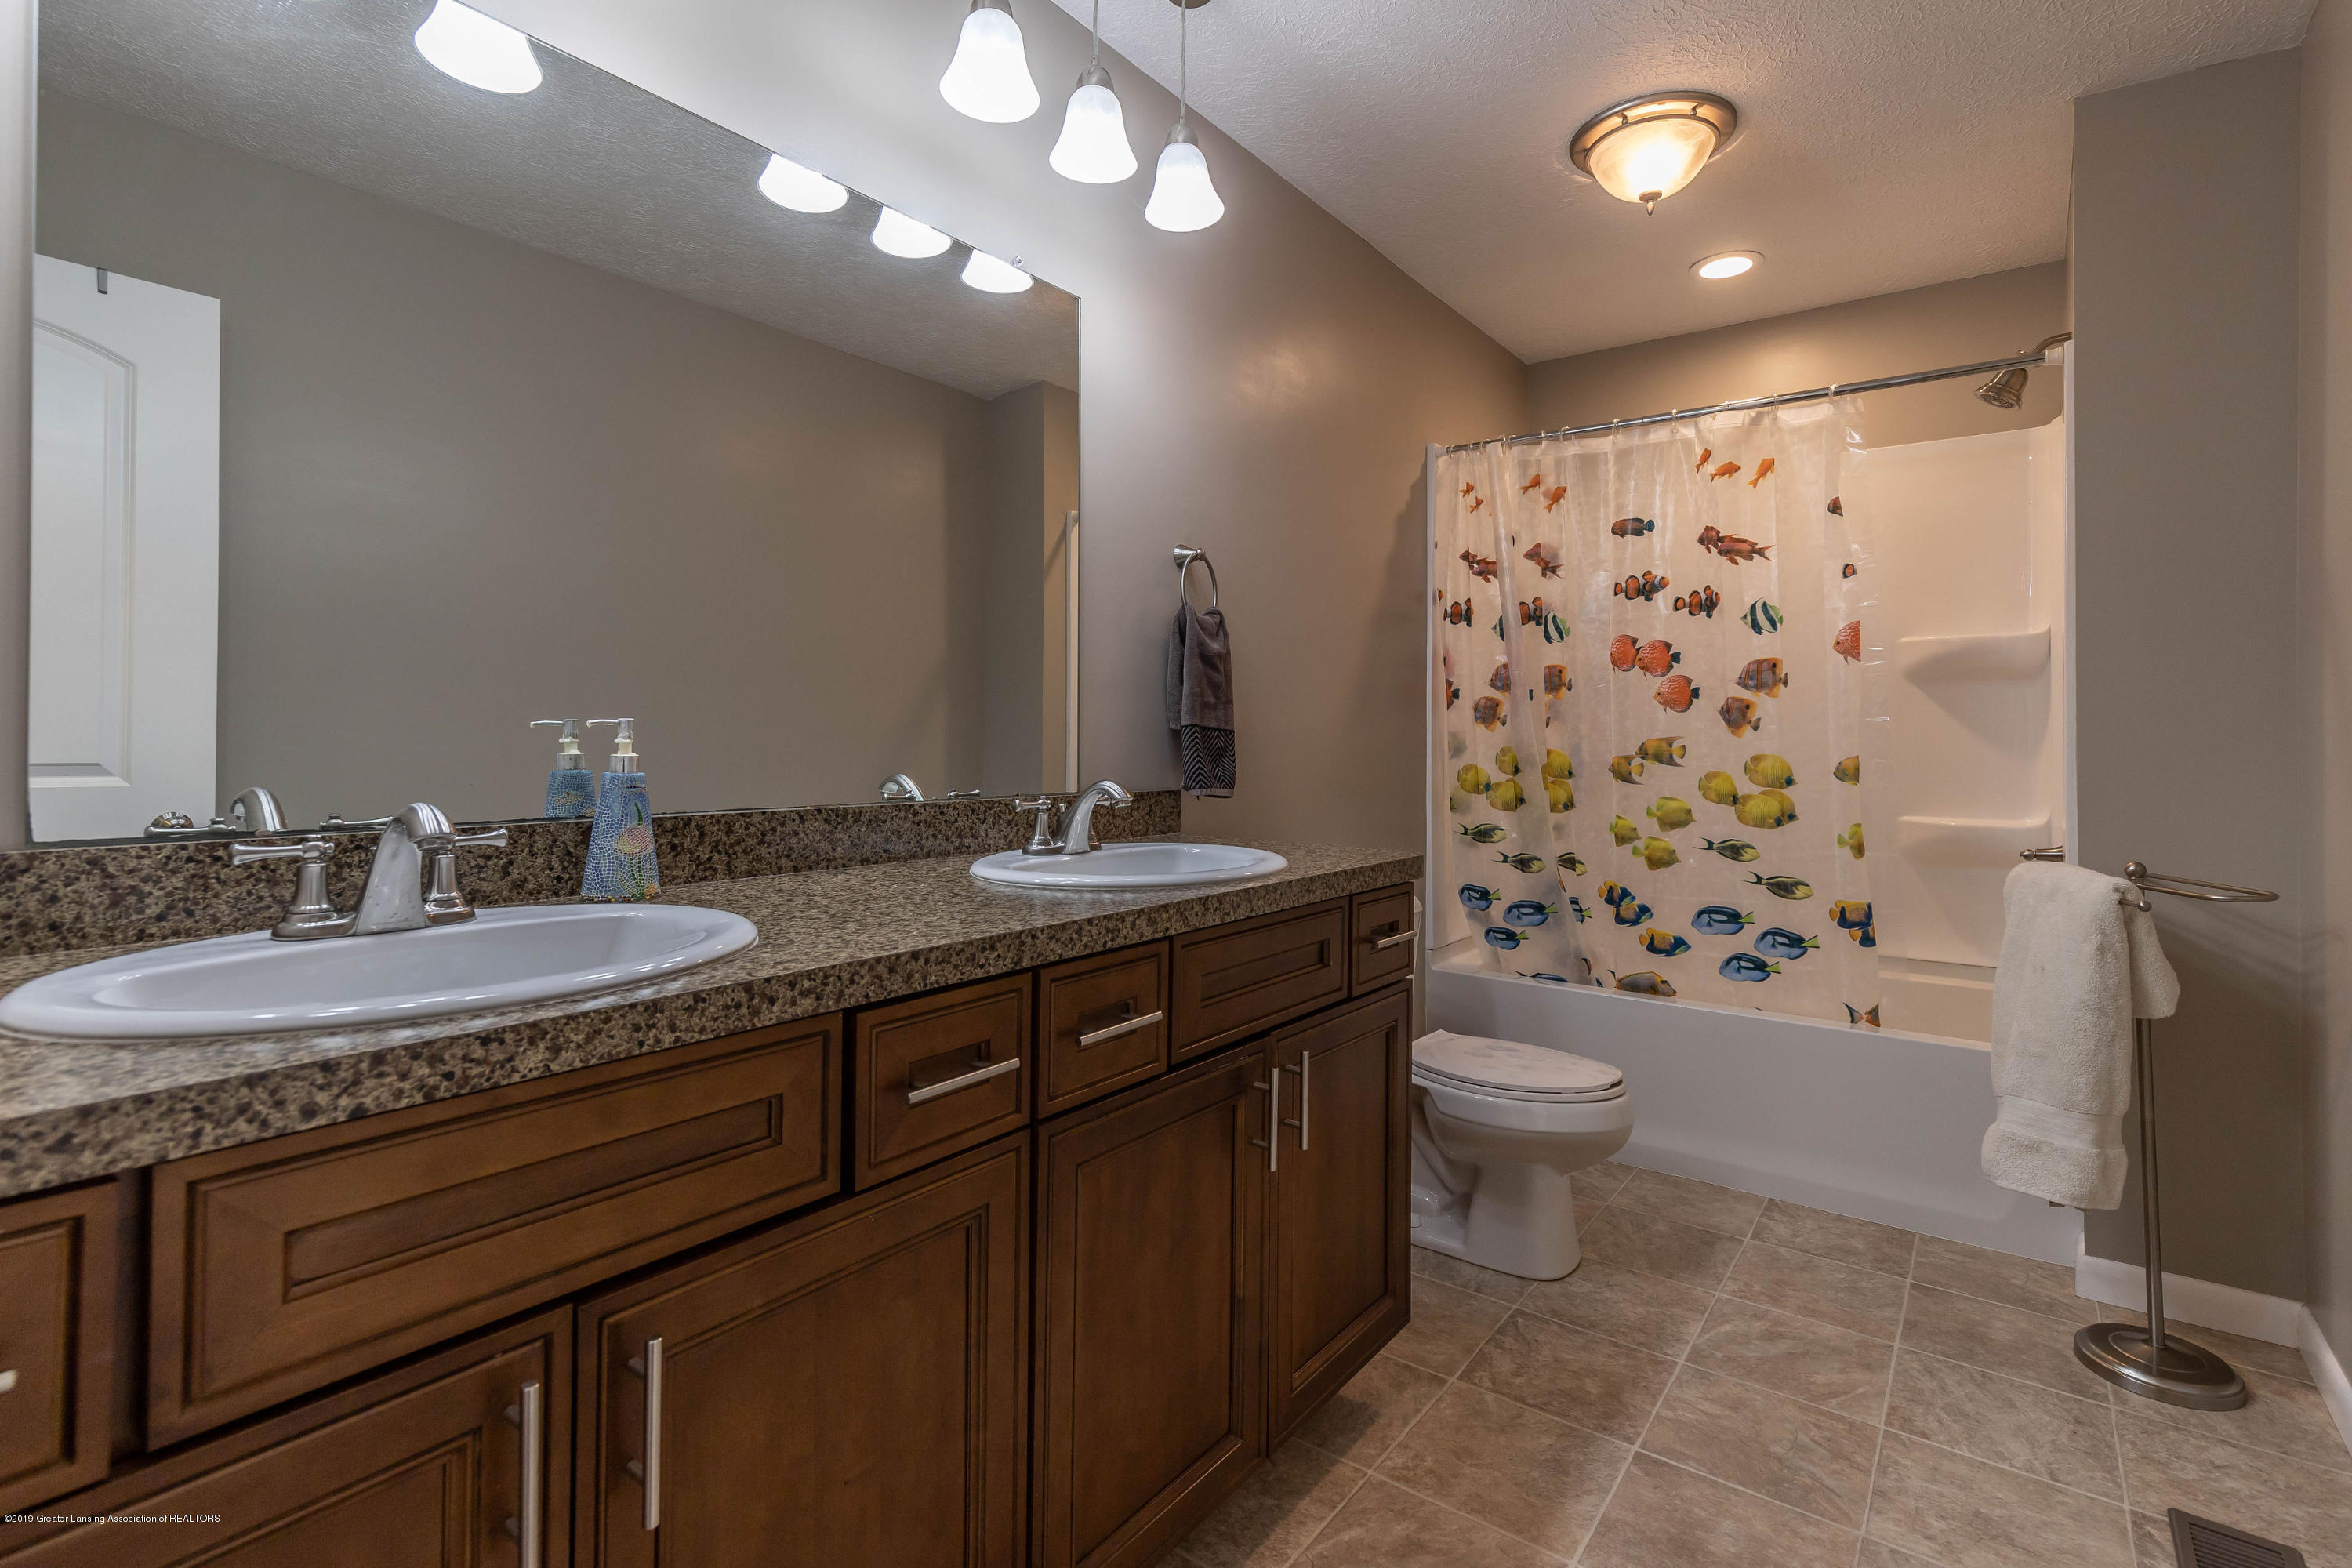 1701 Wyngarden Ln - Full Bathroom - 51